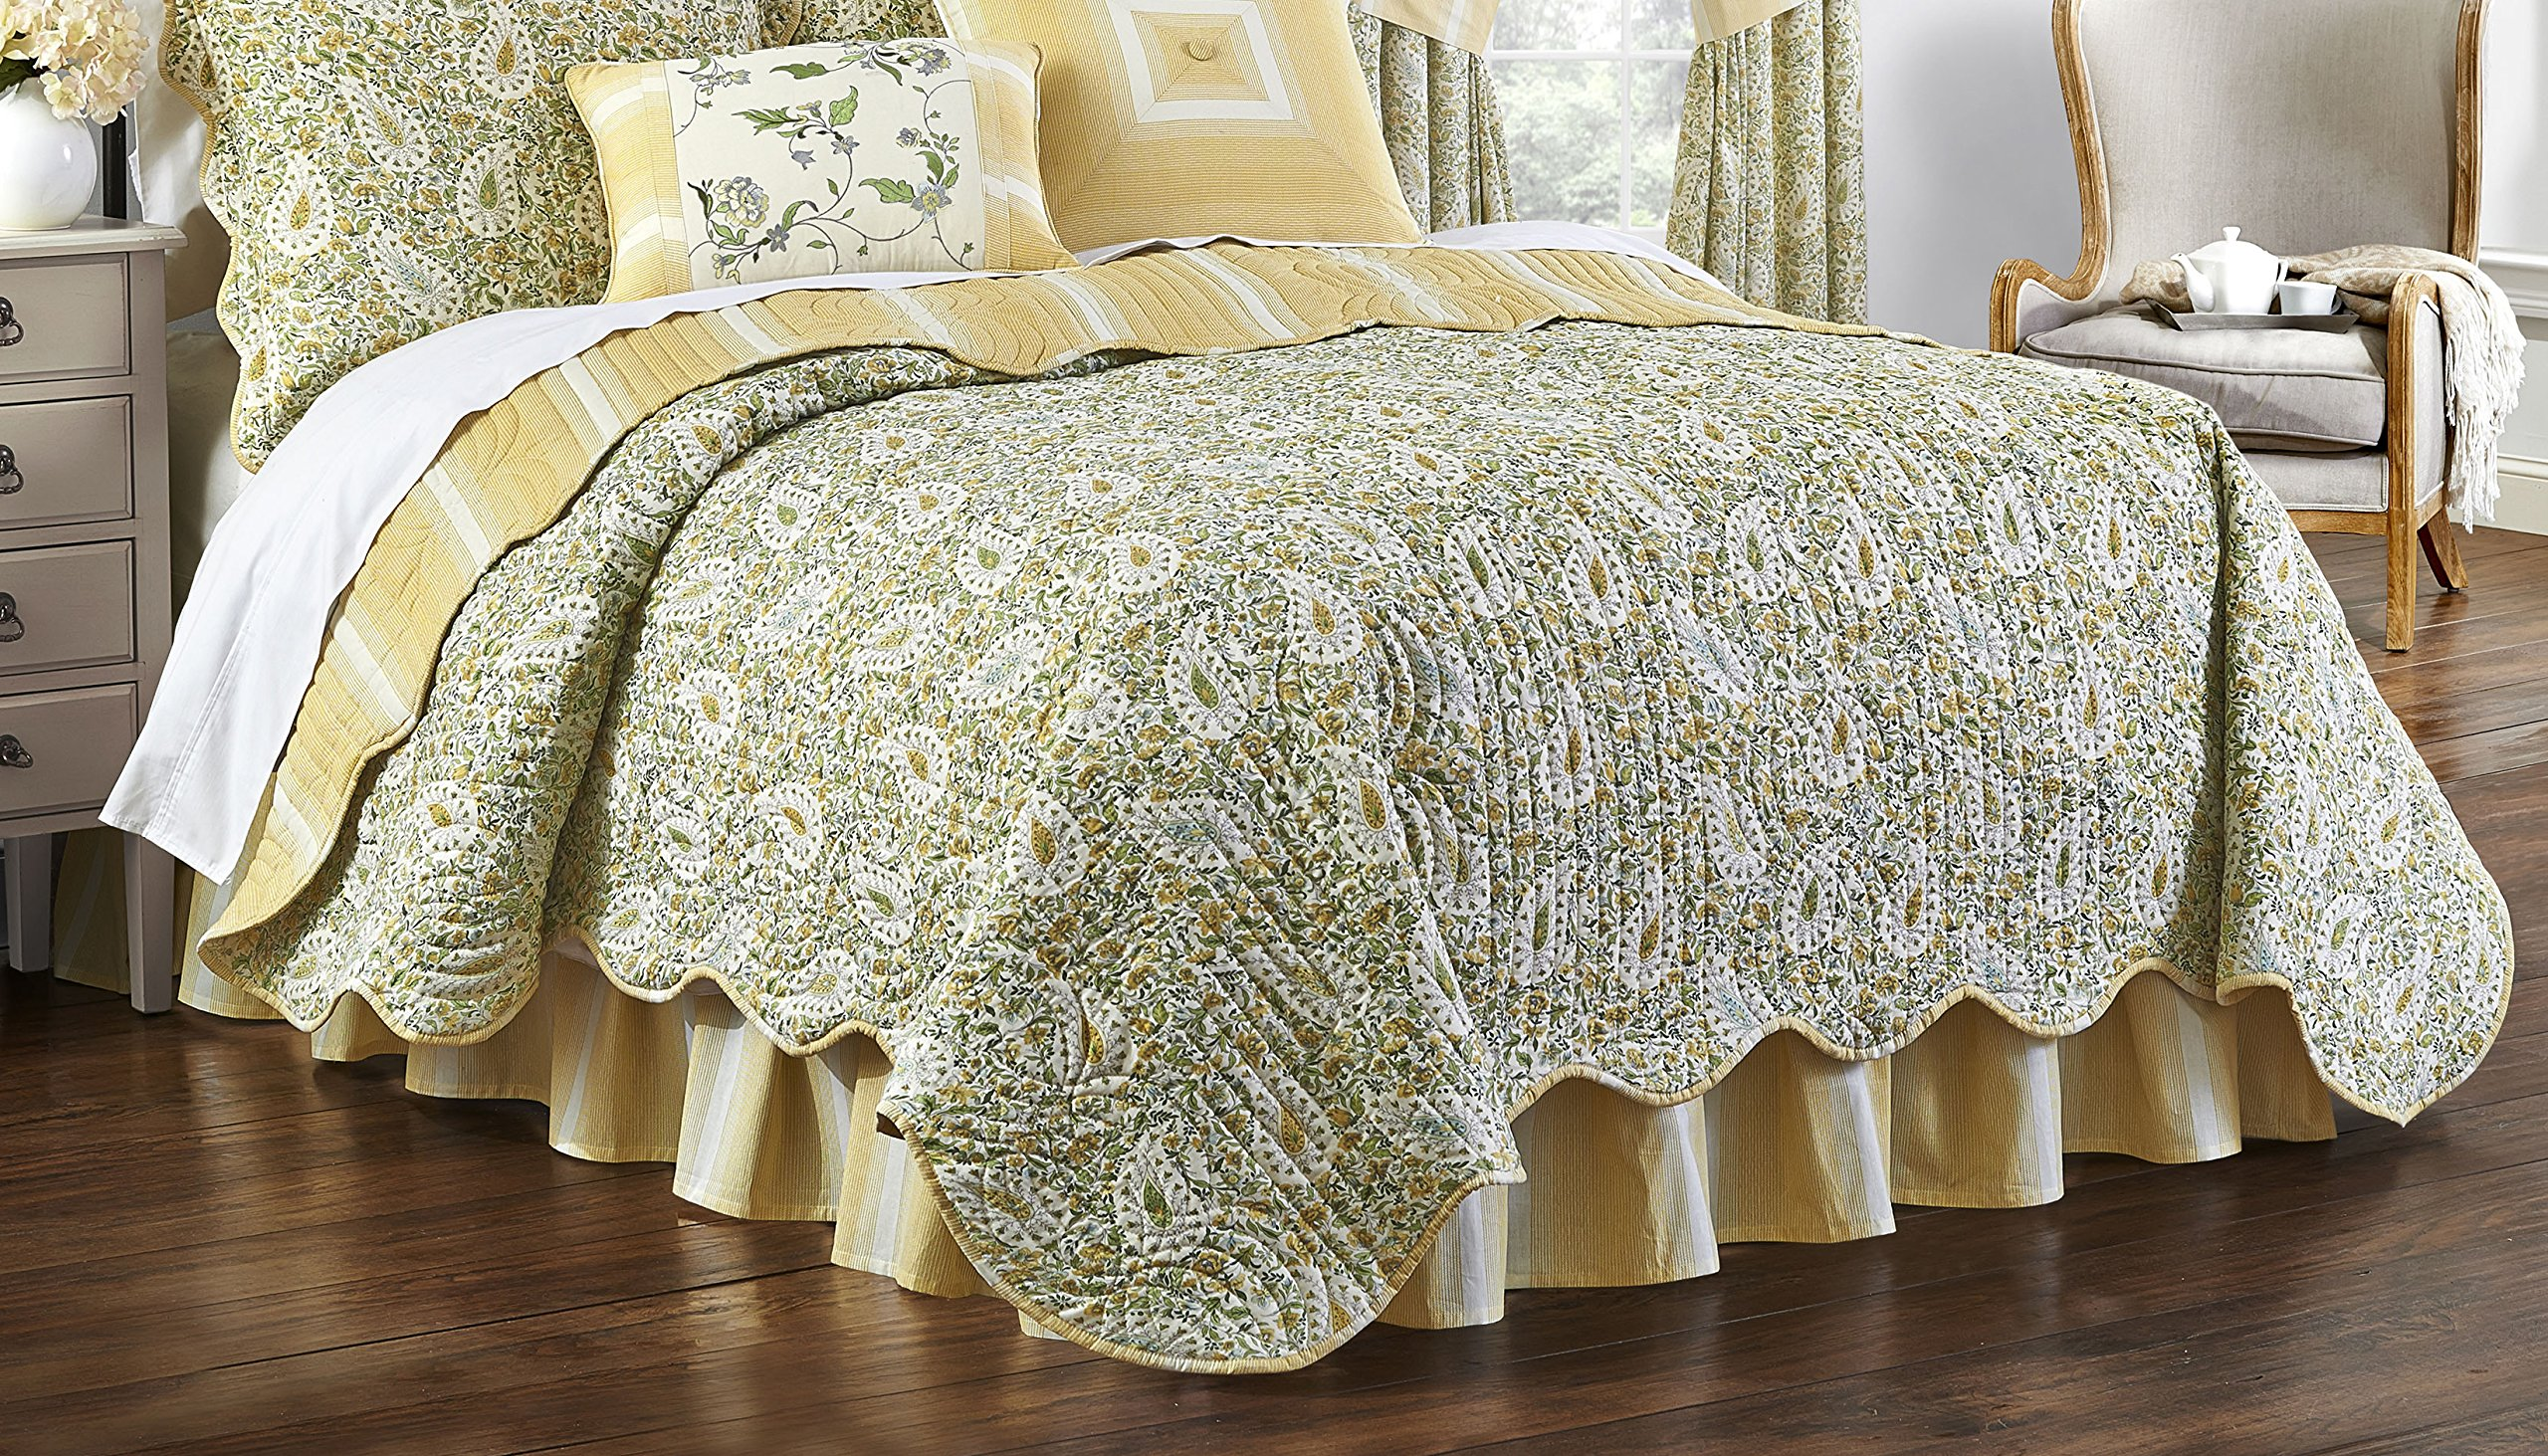 Waverly 15546BEDDTWNSPR Paisley Verveine 86-Inch by 68-inch Twin Reversible Quilt Collection, Spring